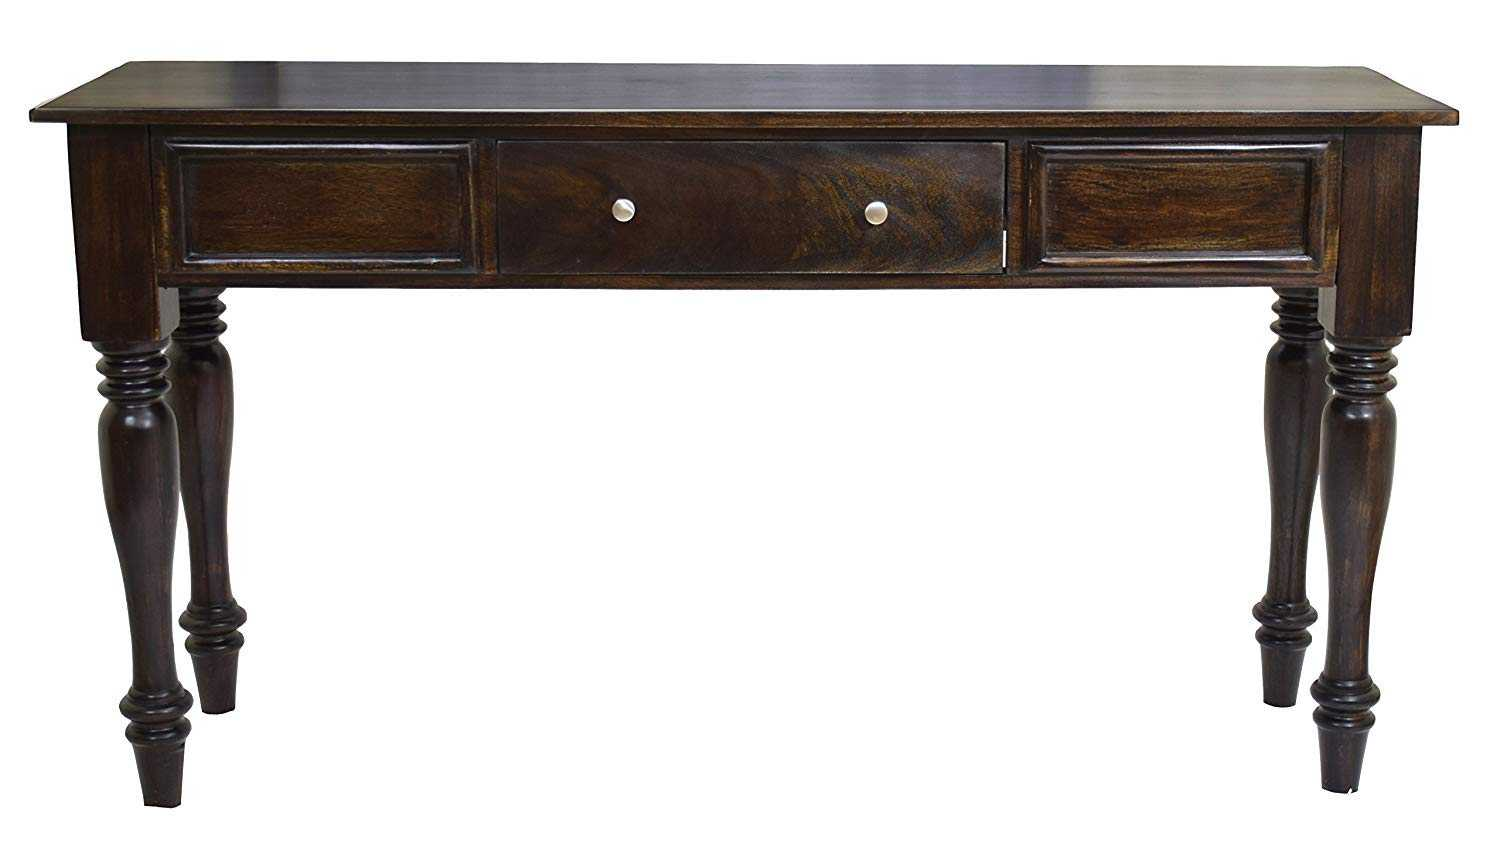 Rinbi Console Hall Writing Table Dark Walnut Finish Console Table for Home